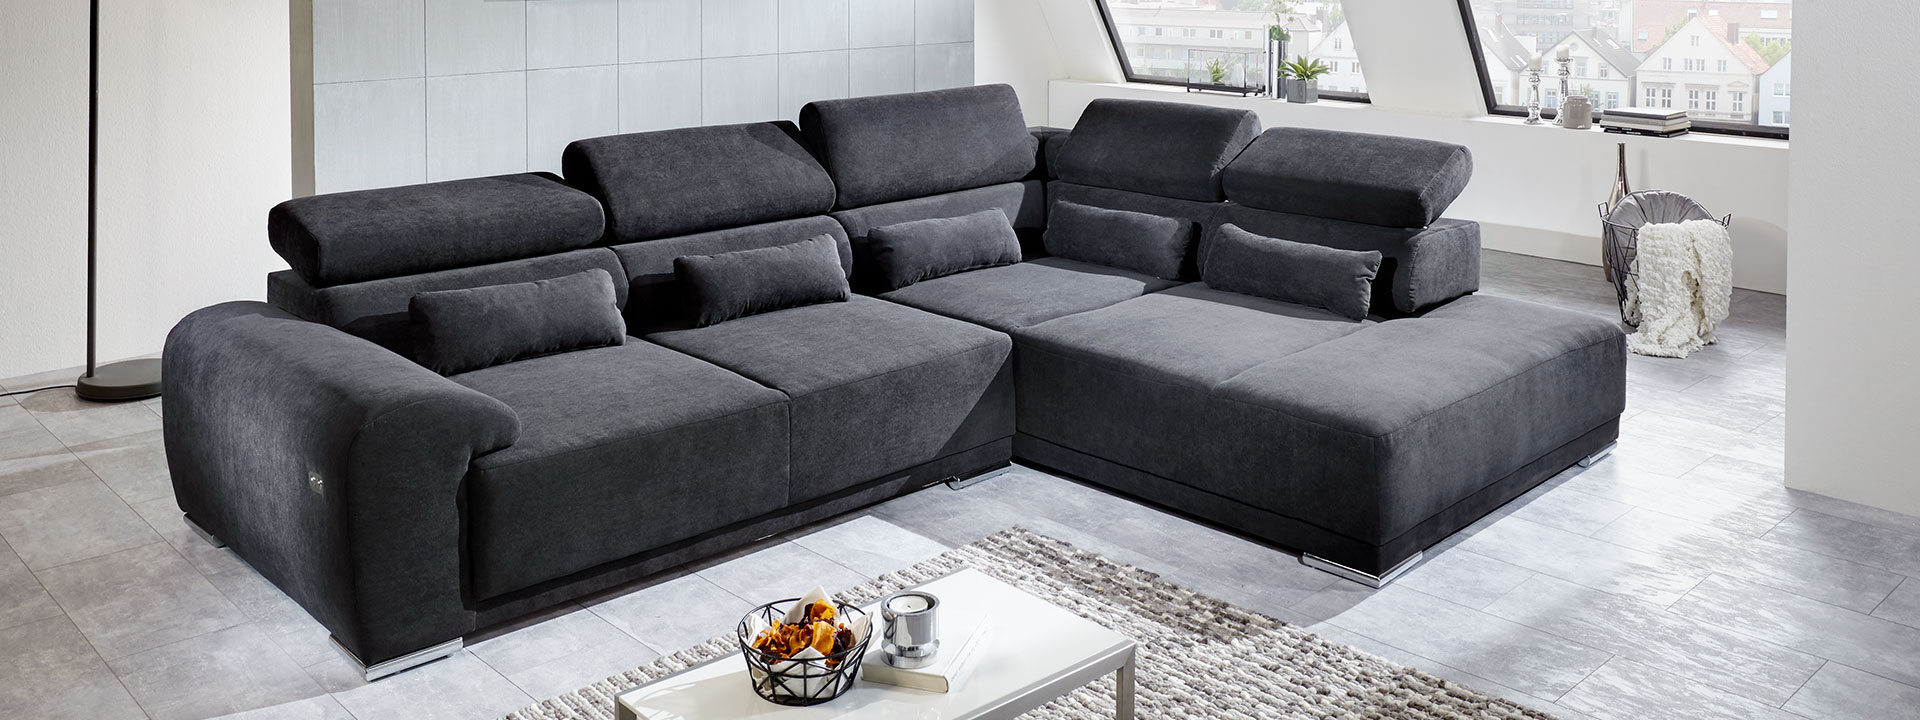 young living stil sofas m bel kabs polsterwelt. Black Bedroom Furniture Sets. Home Design Ideas